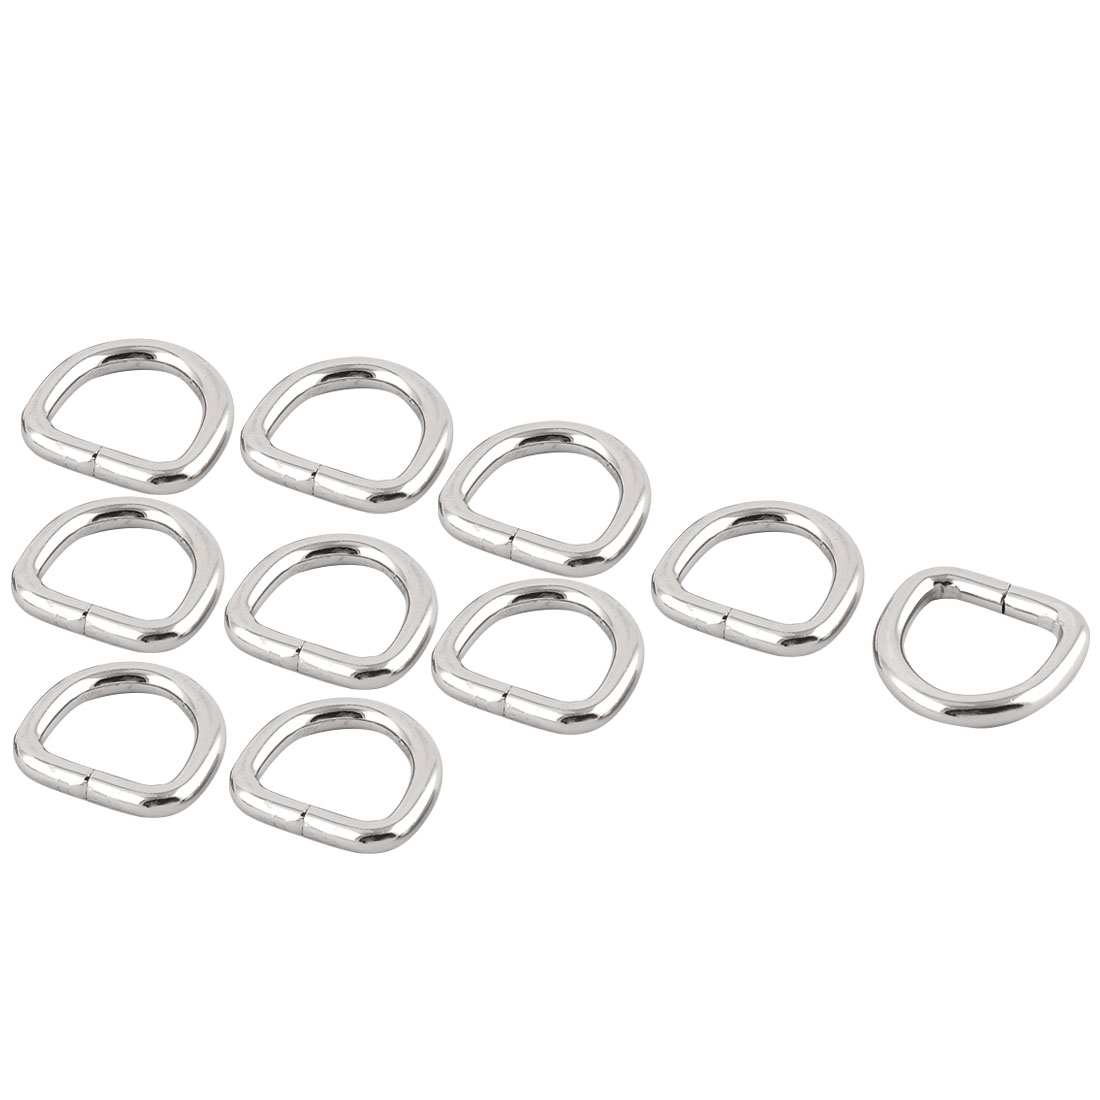 "Handbag Metal D Shaped Ring Buckle 0.8"" x 0.75"" Inside Size Silver Tone 10 Pcs"